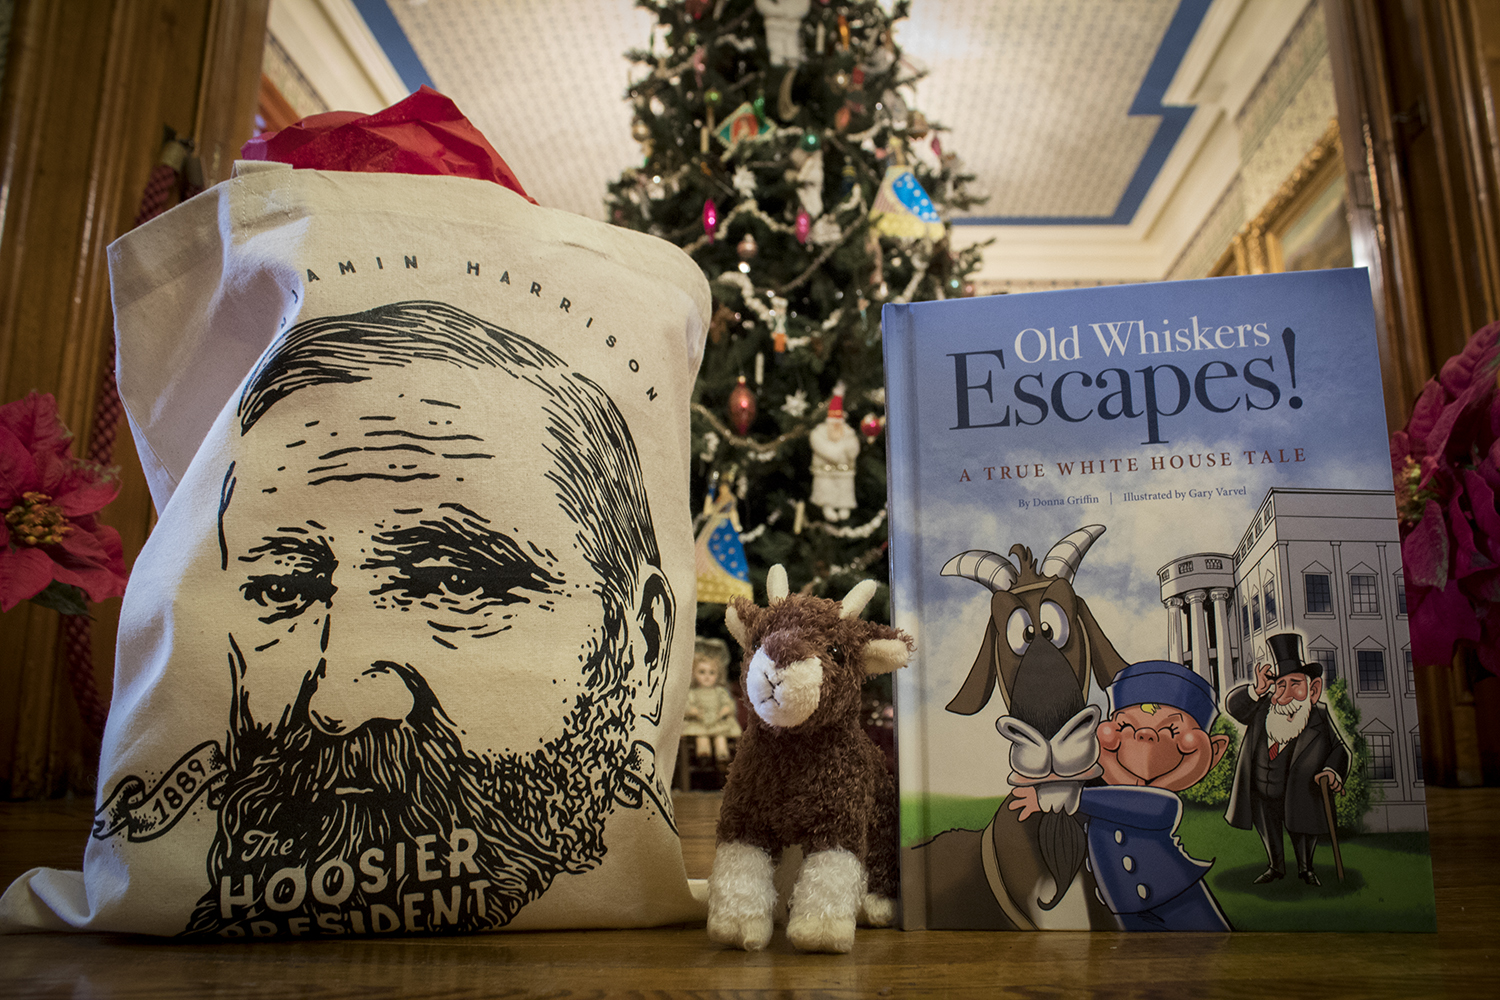 This photograph features Benjamin Harrison merchandise, including a tote bag sporting an illustration of Benjamin Harrison's face, a plush of Benjamin Harrison's pet goat, Old Whiskers, and a children's book about Old Whisker's escape. Pictured in front of a holiday tree, fully decorated with ornaments and tinsel.